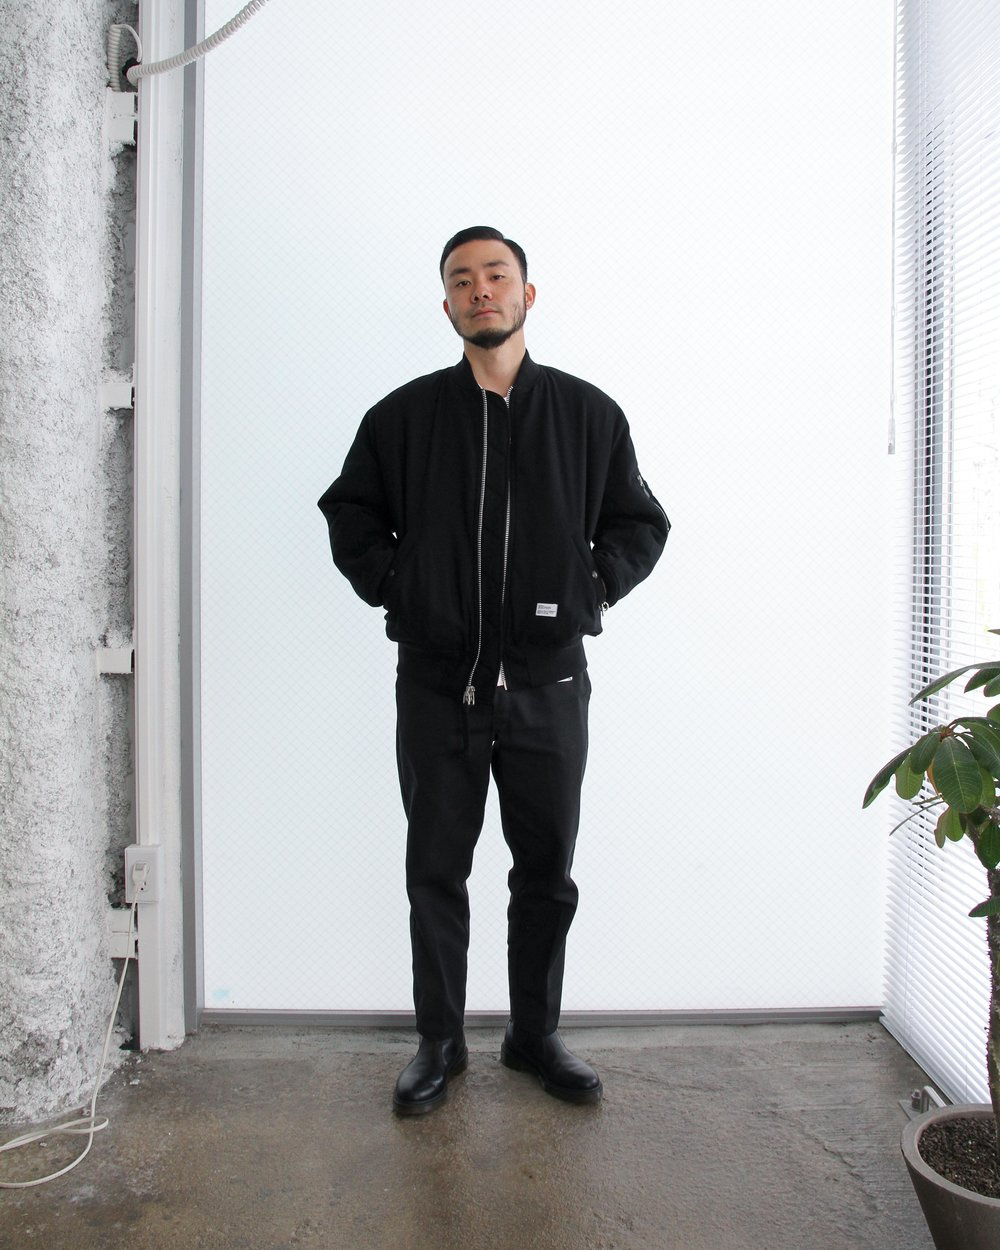 """Ryo wears: """"DUFFY"""" a reversible MA-1 jacket available in black/orange or black/red (in-store exclusive)"""